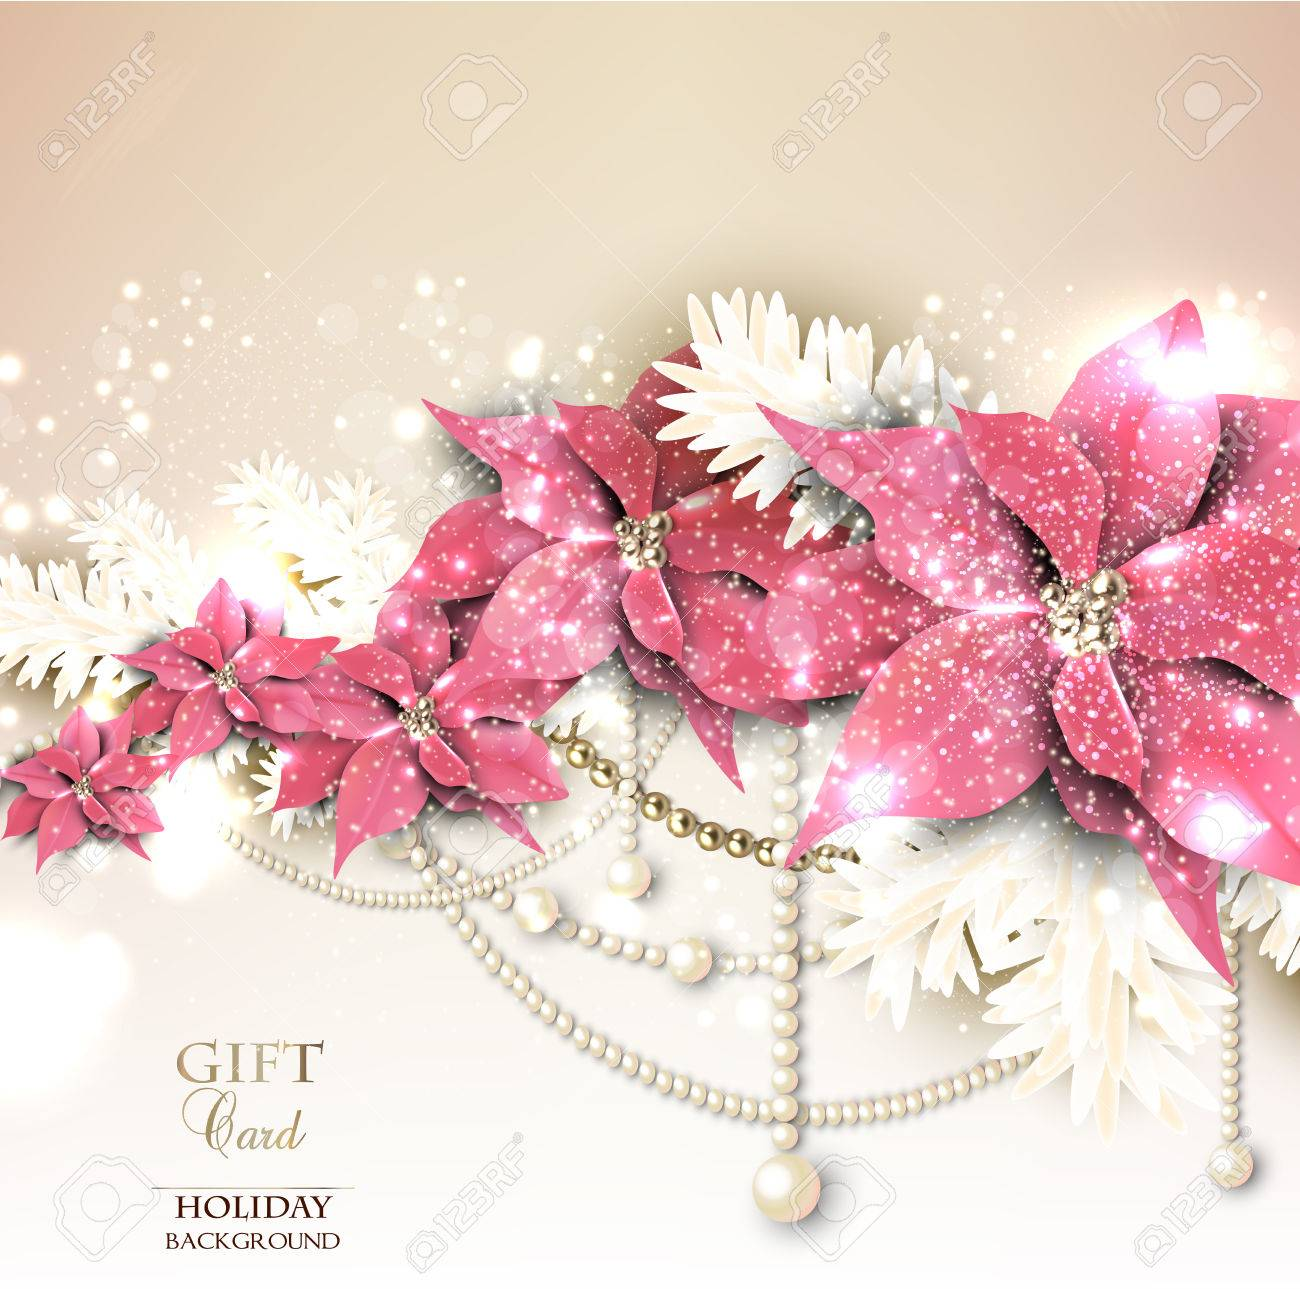 Elegant  background with Christmas garland. Vector illustration Stock Vector - 23833229